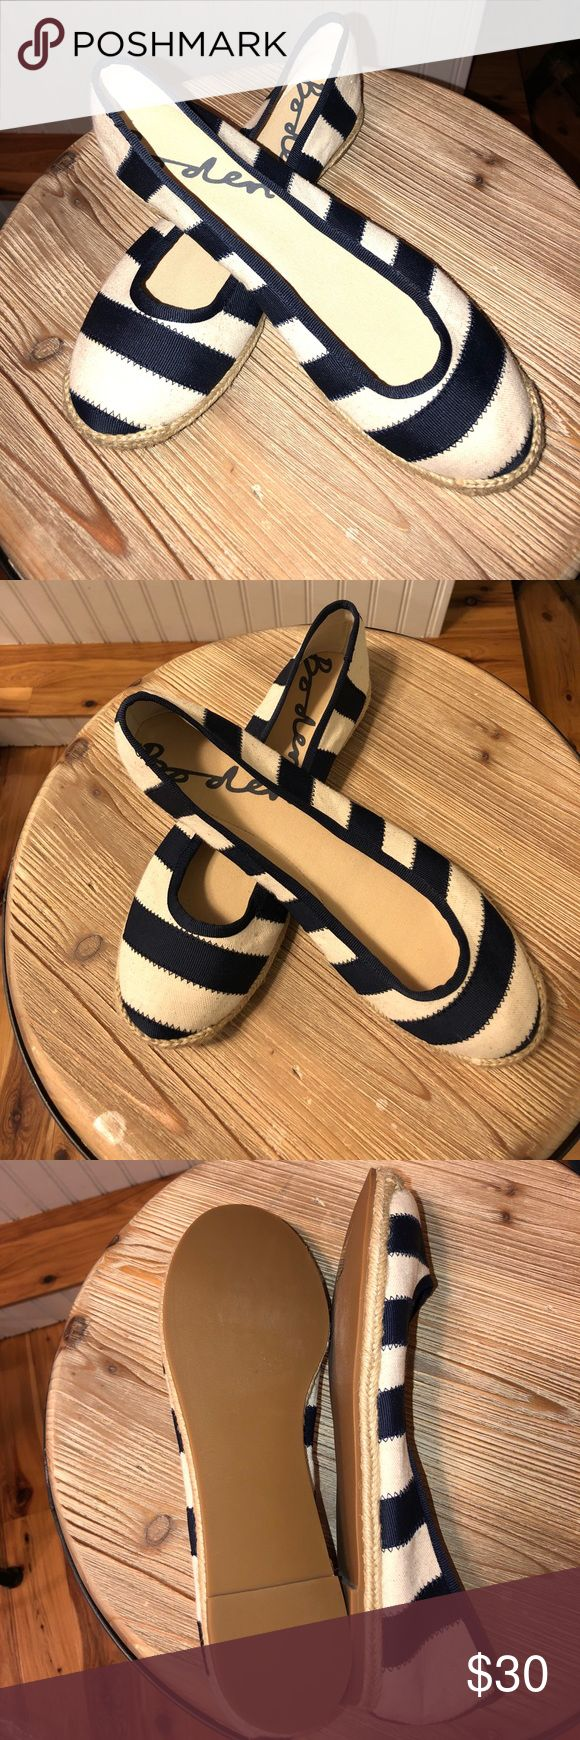 NWT Boden preppy hip boho espadrilles beach fun NWT Boden preppy hip boho espadrilles. Navy and cream. Tooo cute! They are a Euro 40, but for a US 9 Boden Shoes Espadrilles